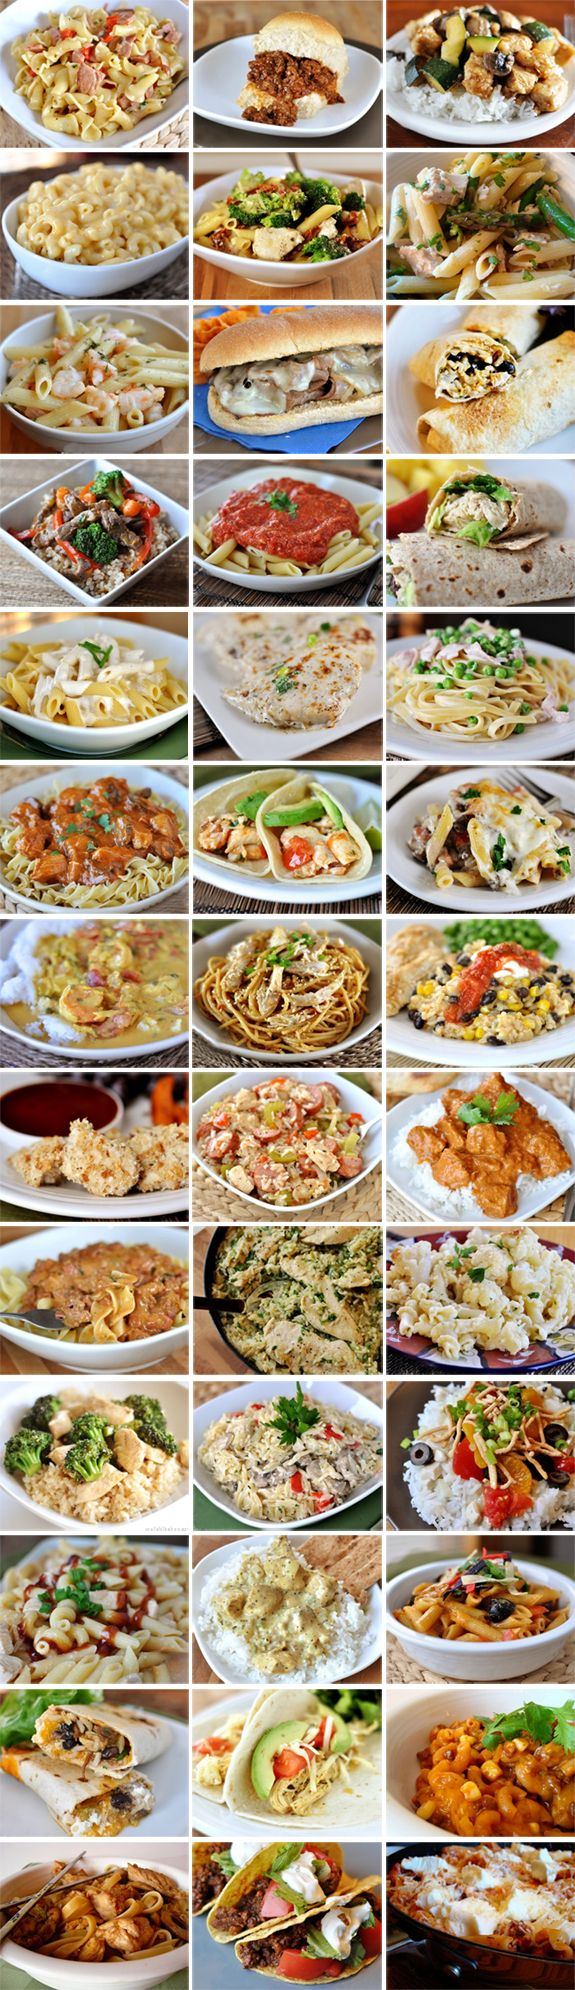 39 Meals to Make in 30-Minutes or Less from Mel's Kitchen Cafe (always delicious) #recipes